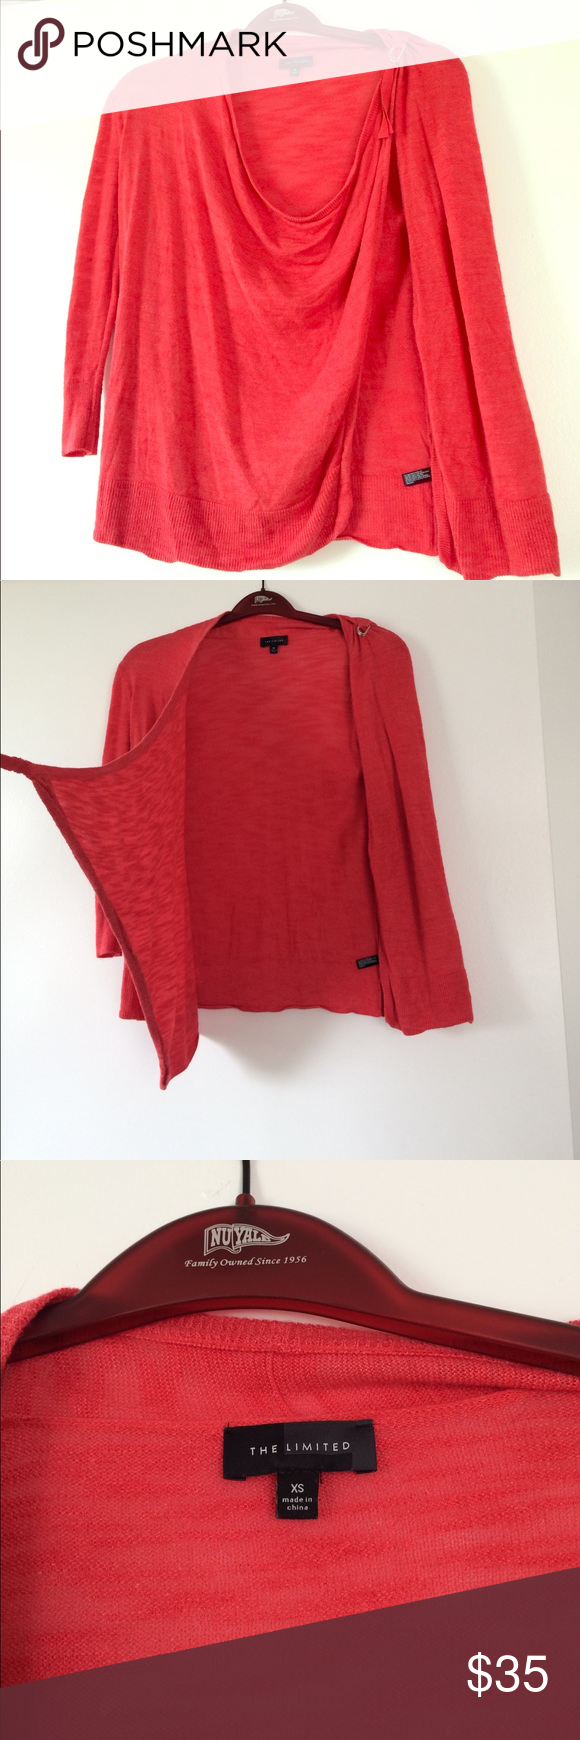 Red summer sweater with shoulder tie | Summer sweaters, Cowl neck ...